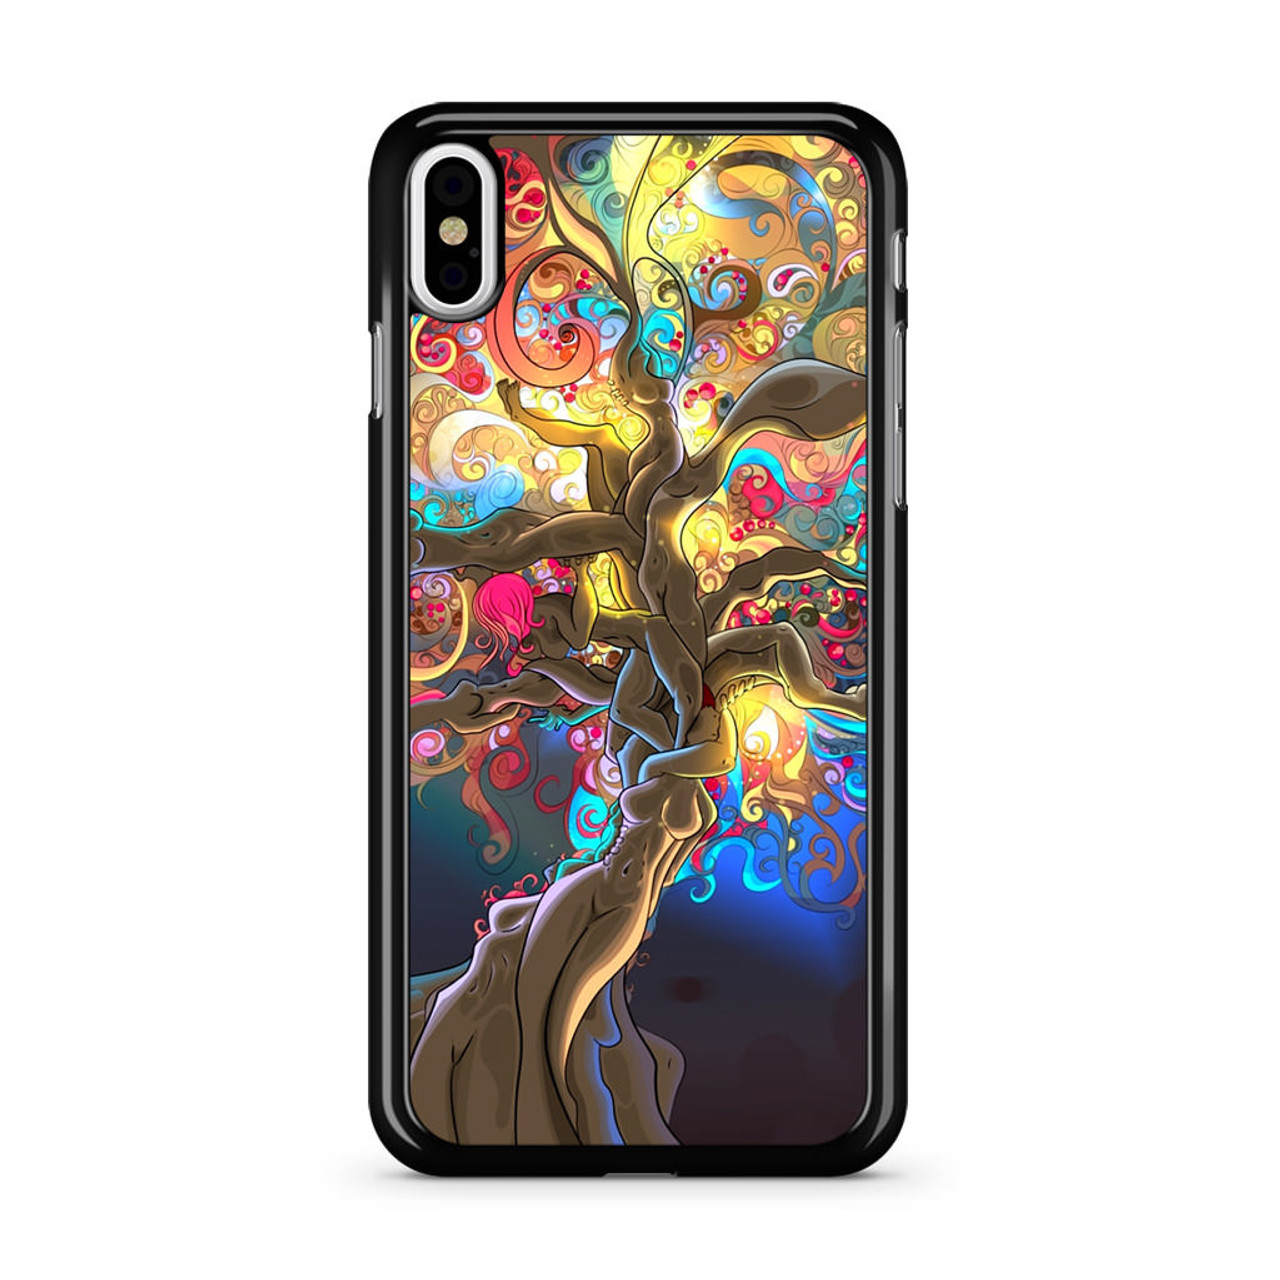 Artistic Psychedelic Womens Tree iPhone X Case - CASESHUNTER 6150c81562